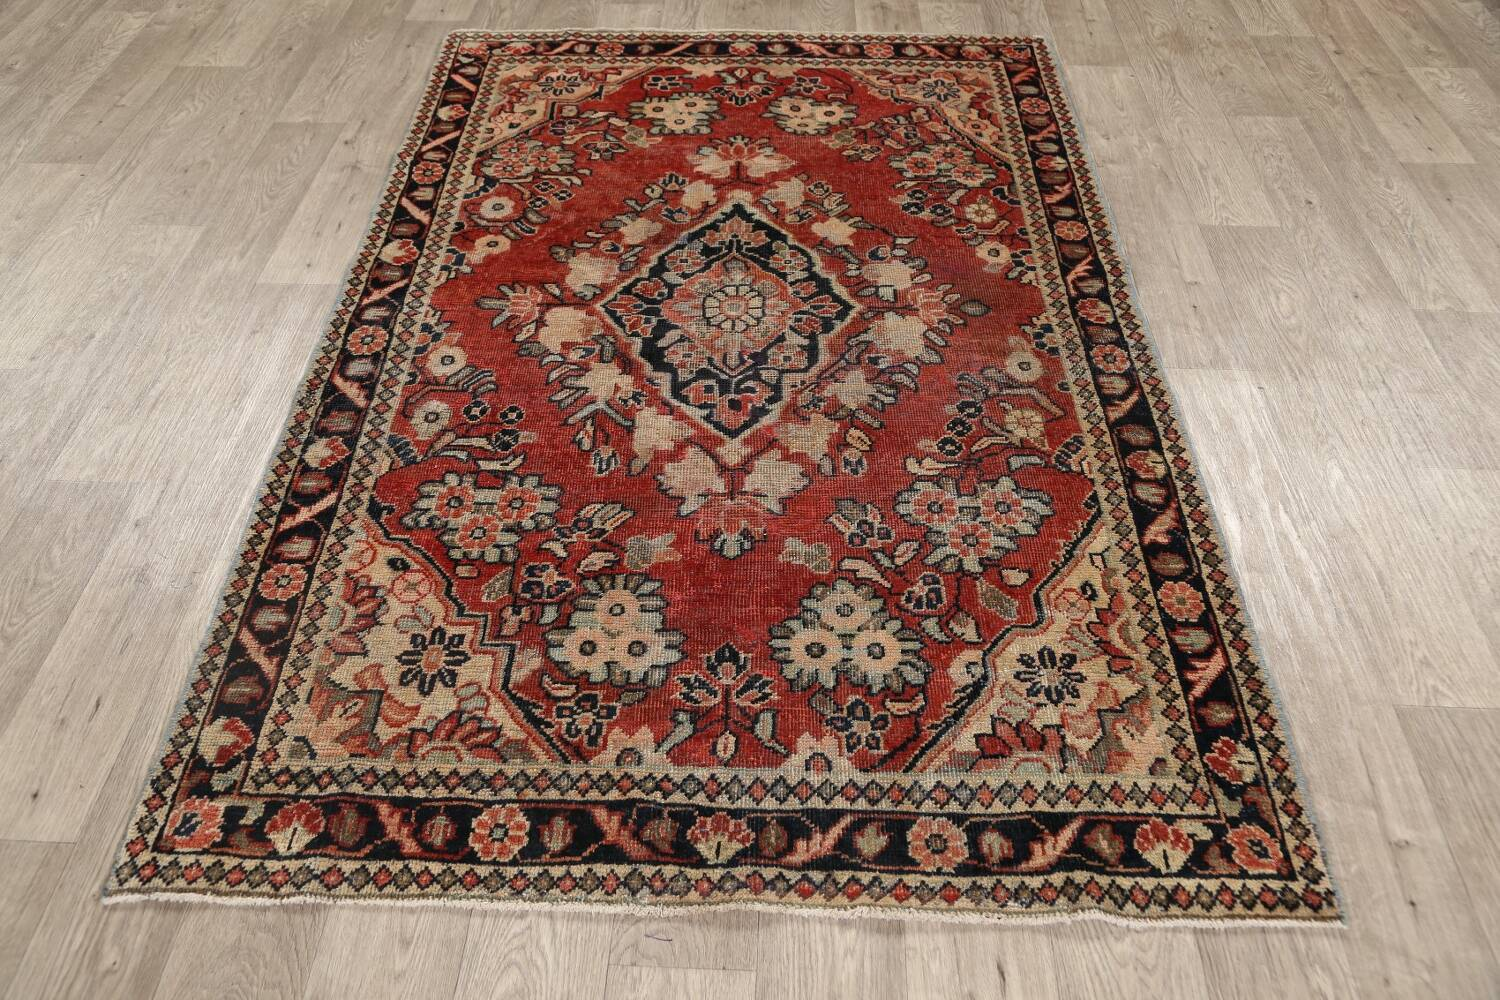 Antique Floral Mahal Persian Area Rug 4x7 image 15